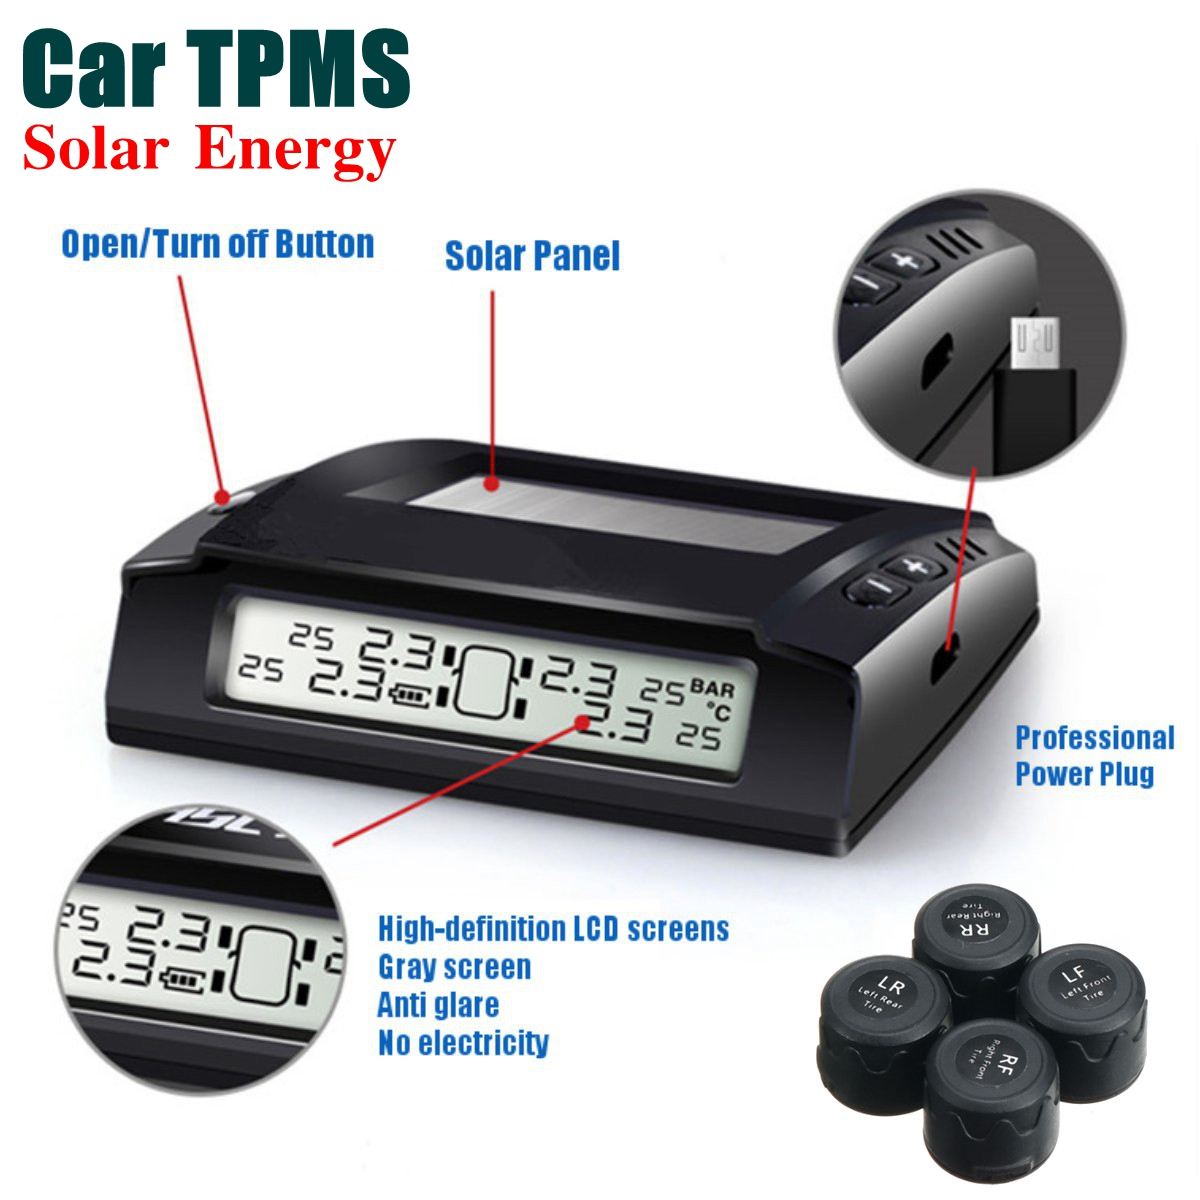 Solar Wireless Car TPMS Tyre Tire Pressure Monitoring System + 4 x External Sensors Digital LCD Display Tire Pressure Alarm tpms tire pressure monitor system car alarm system diagnostic tool wireless solar powered color lcd display